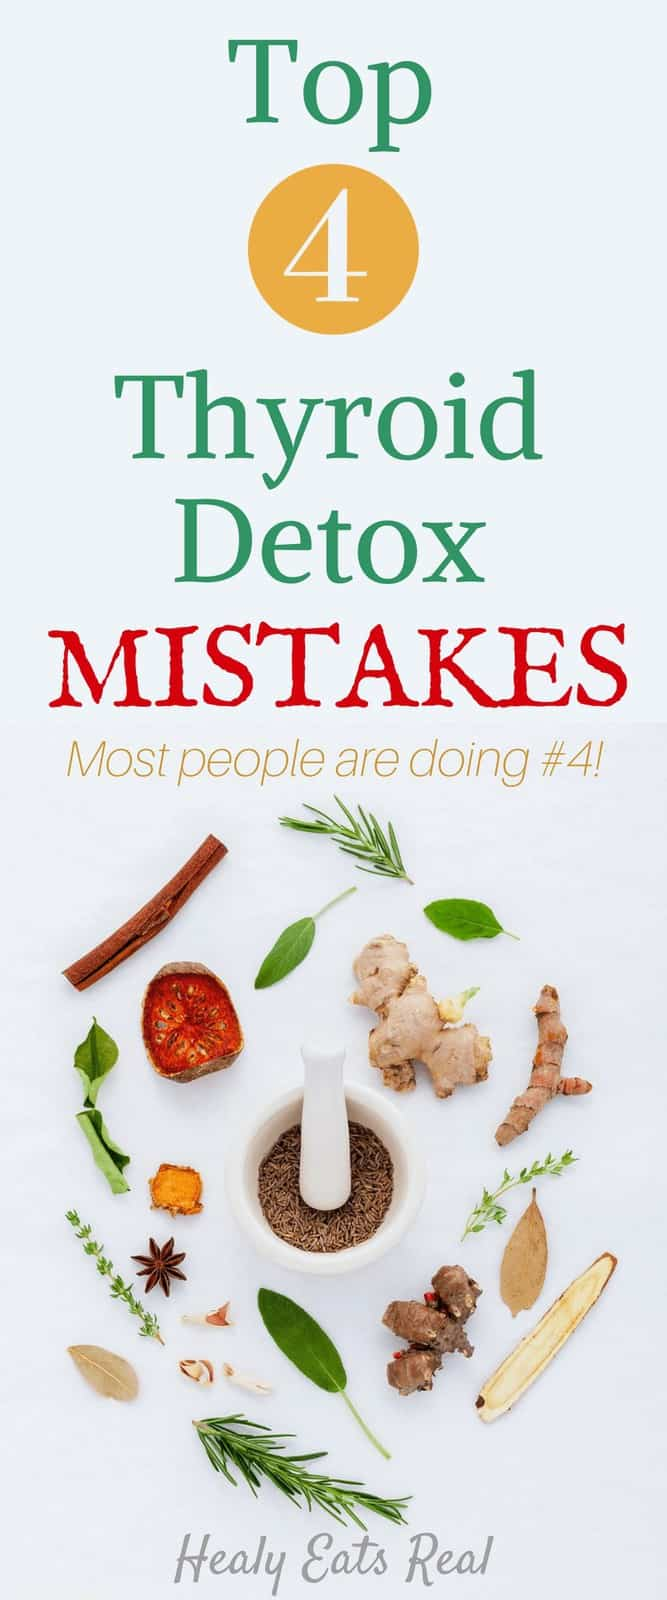 Top 4 Thyroid Detox Mistakes